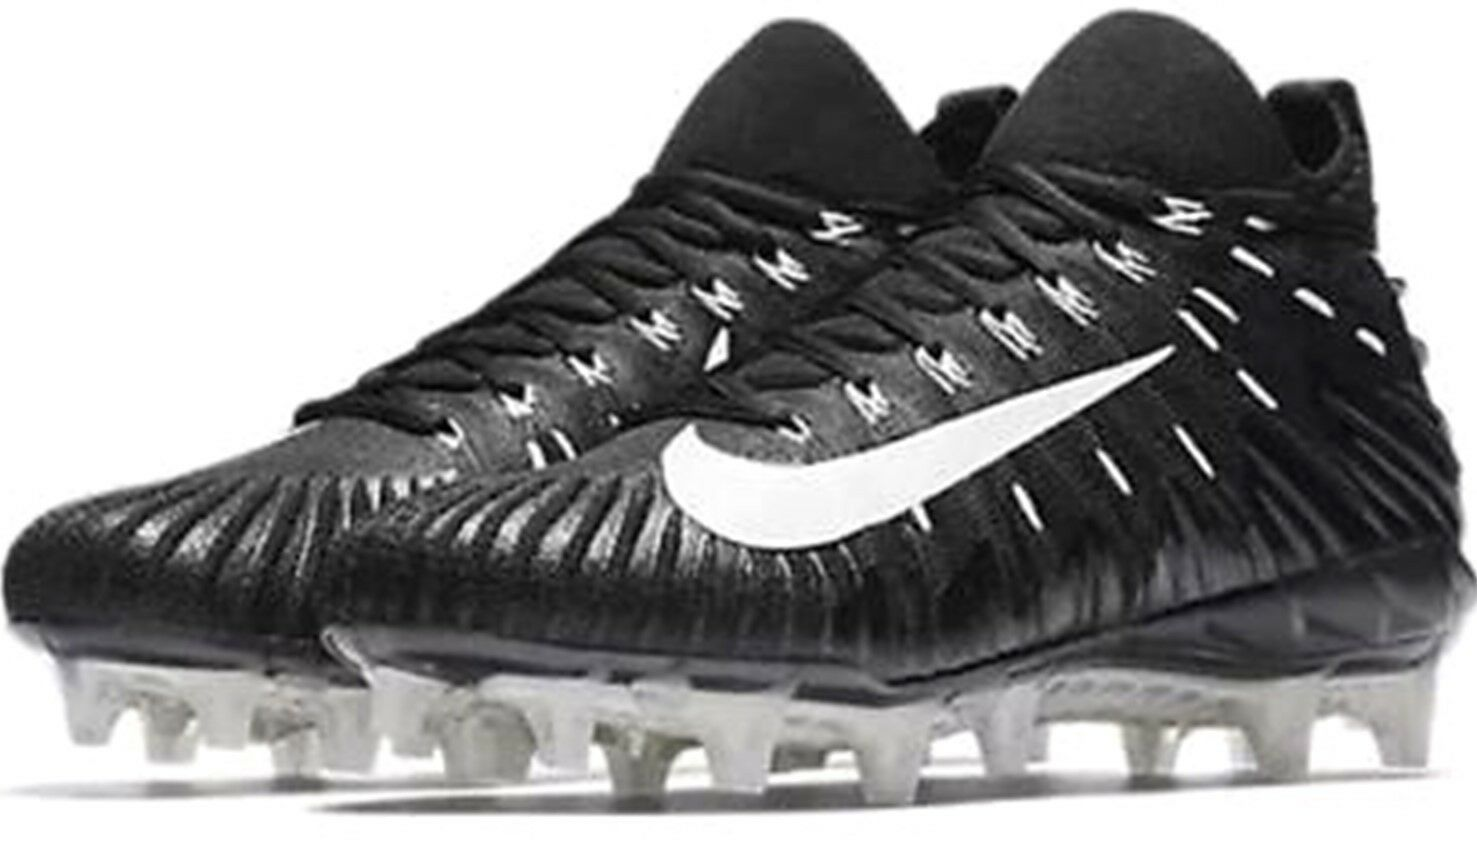 NEW $140 Nike ALPHA MENACE ELITE sz 10.5 BLACK White Football Shoes Cleats